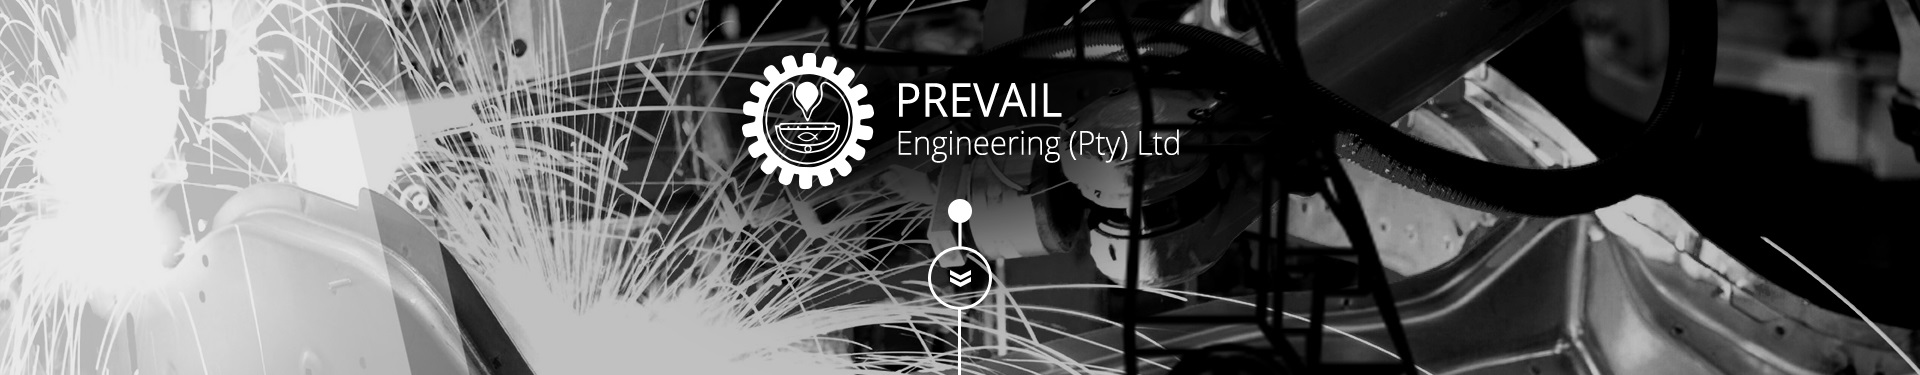 prevail engineering-gallery banner